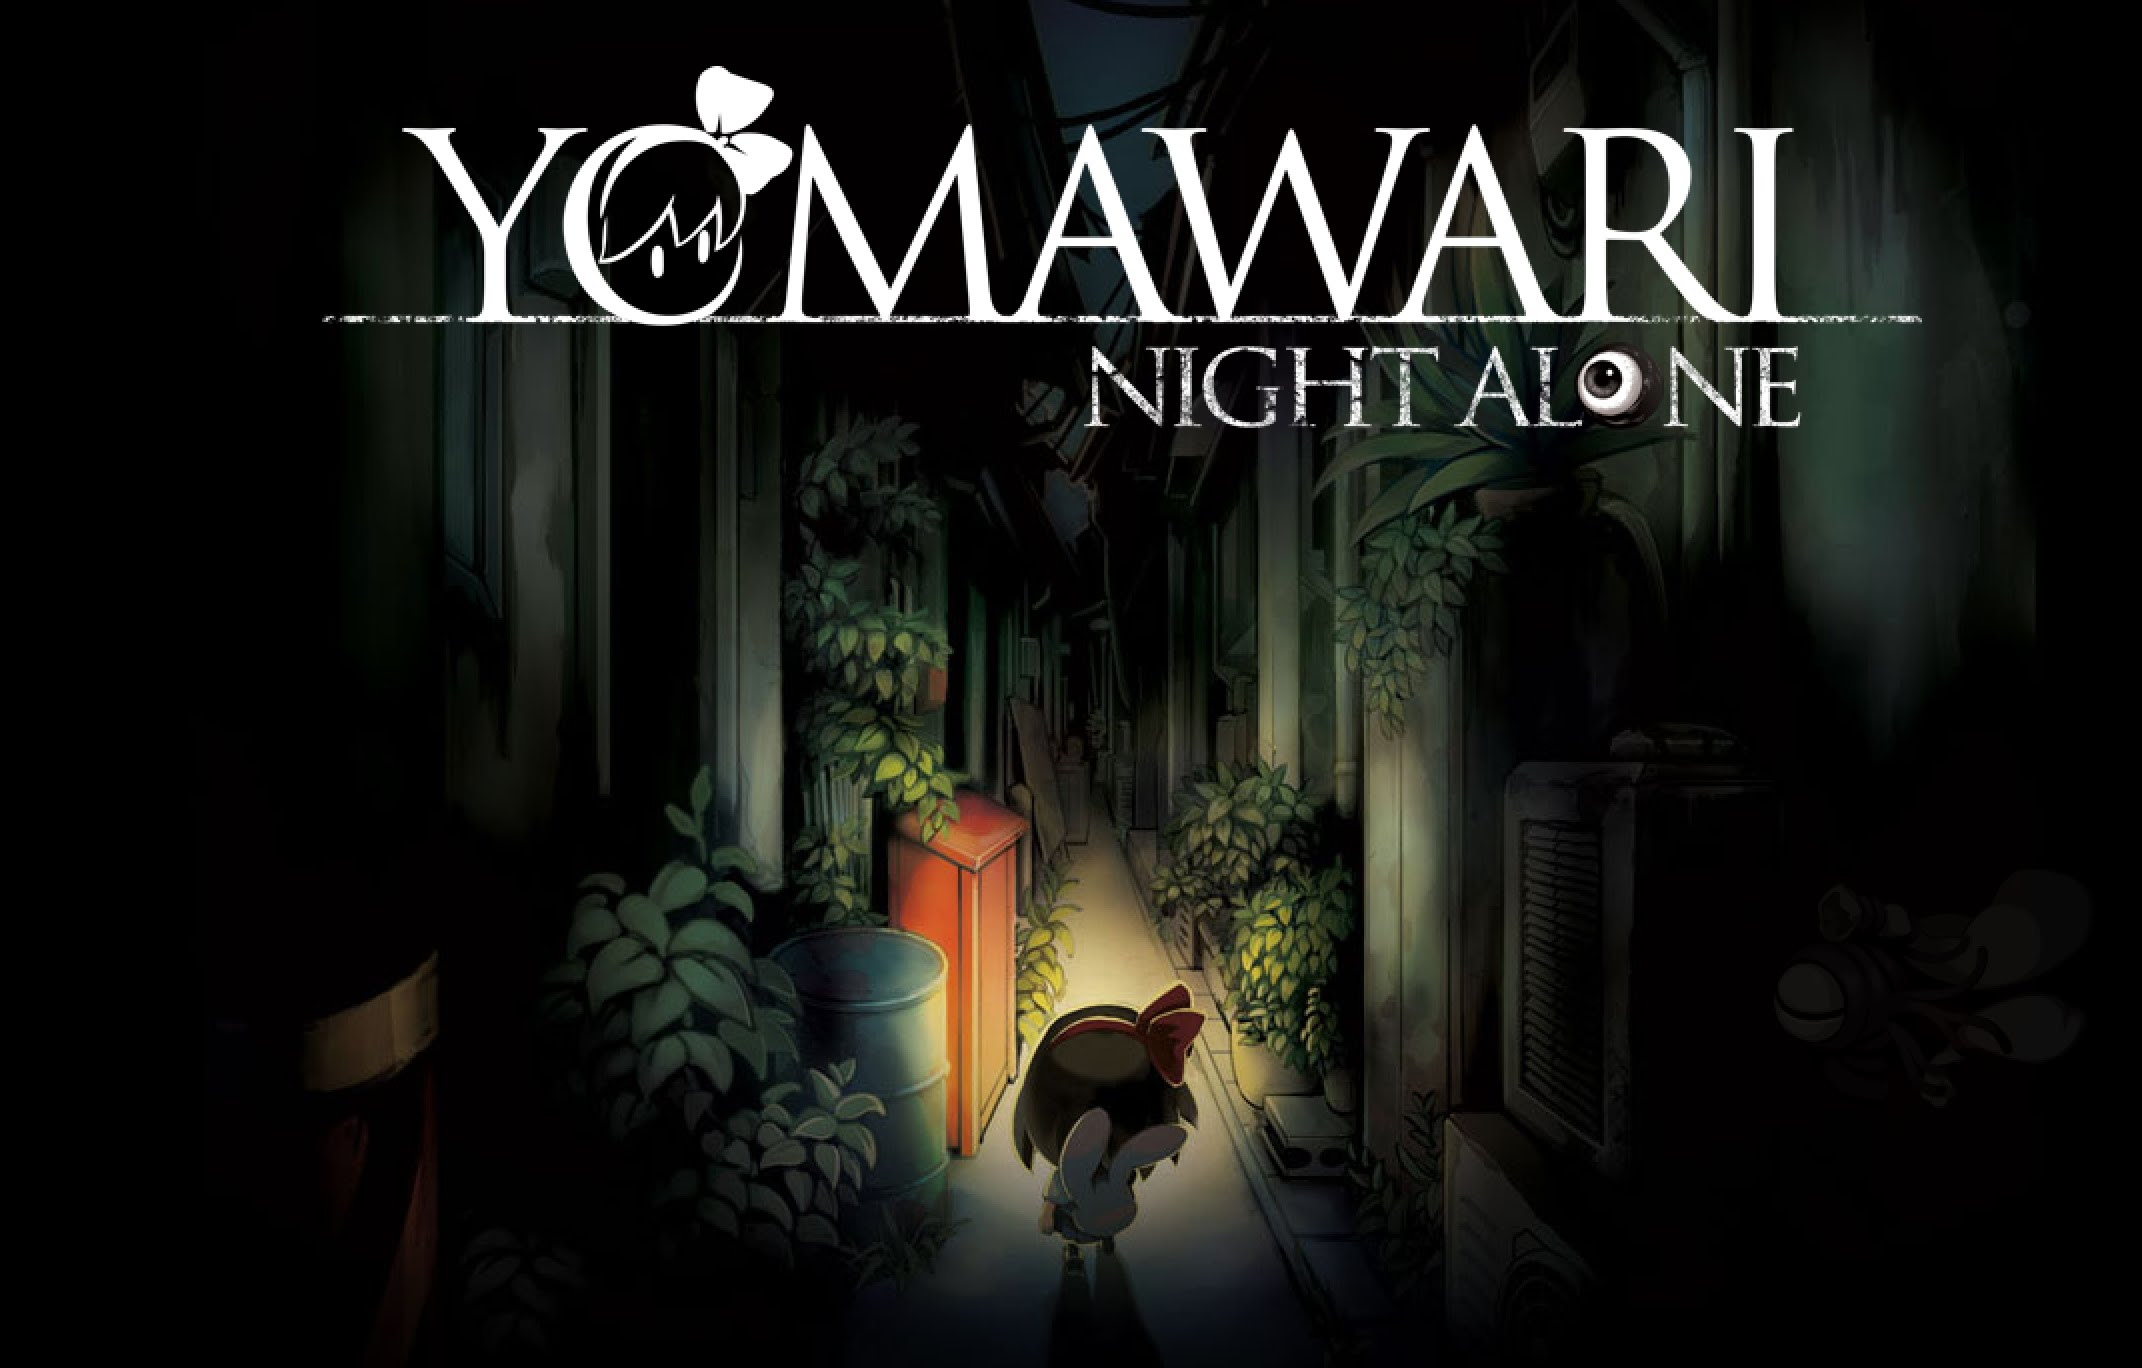 yomawari-night-alone-pc-game-2016-free-download